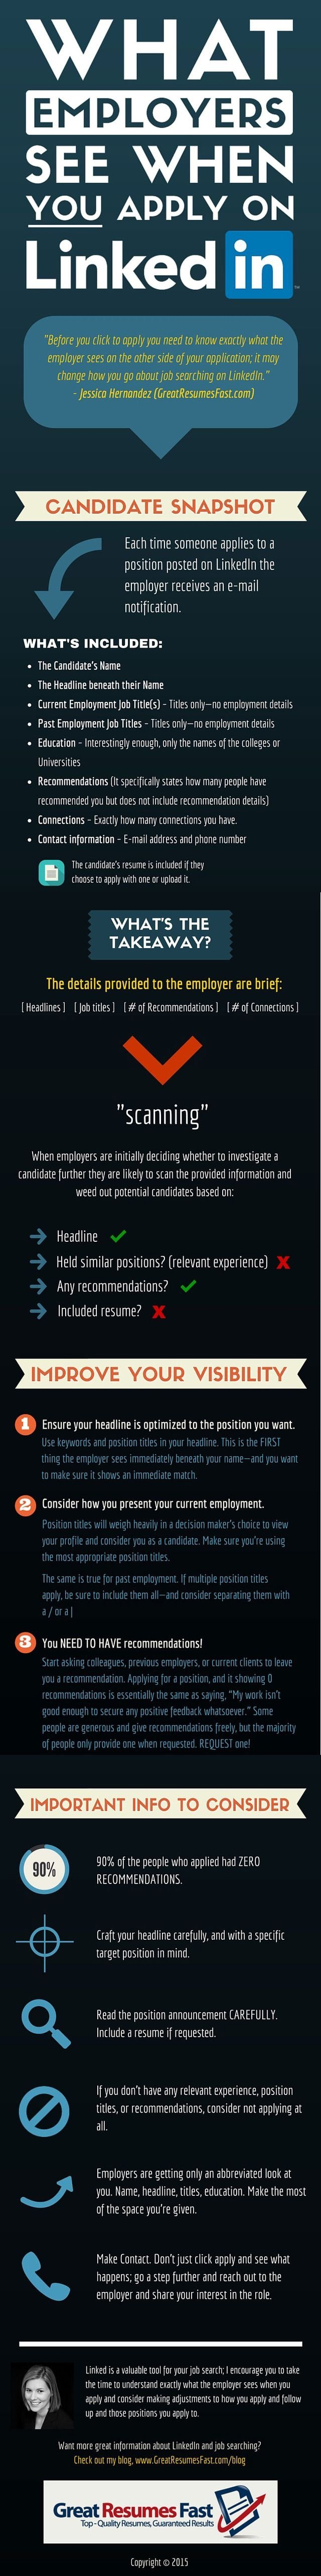 What employers see when you apply on #Linkedin #Infographic